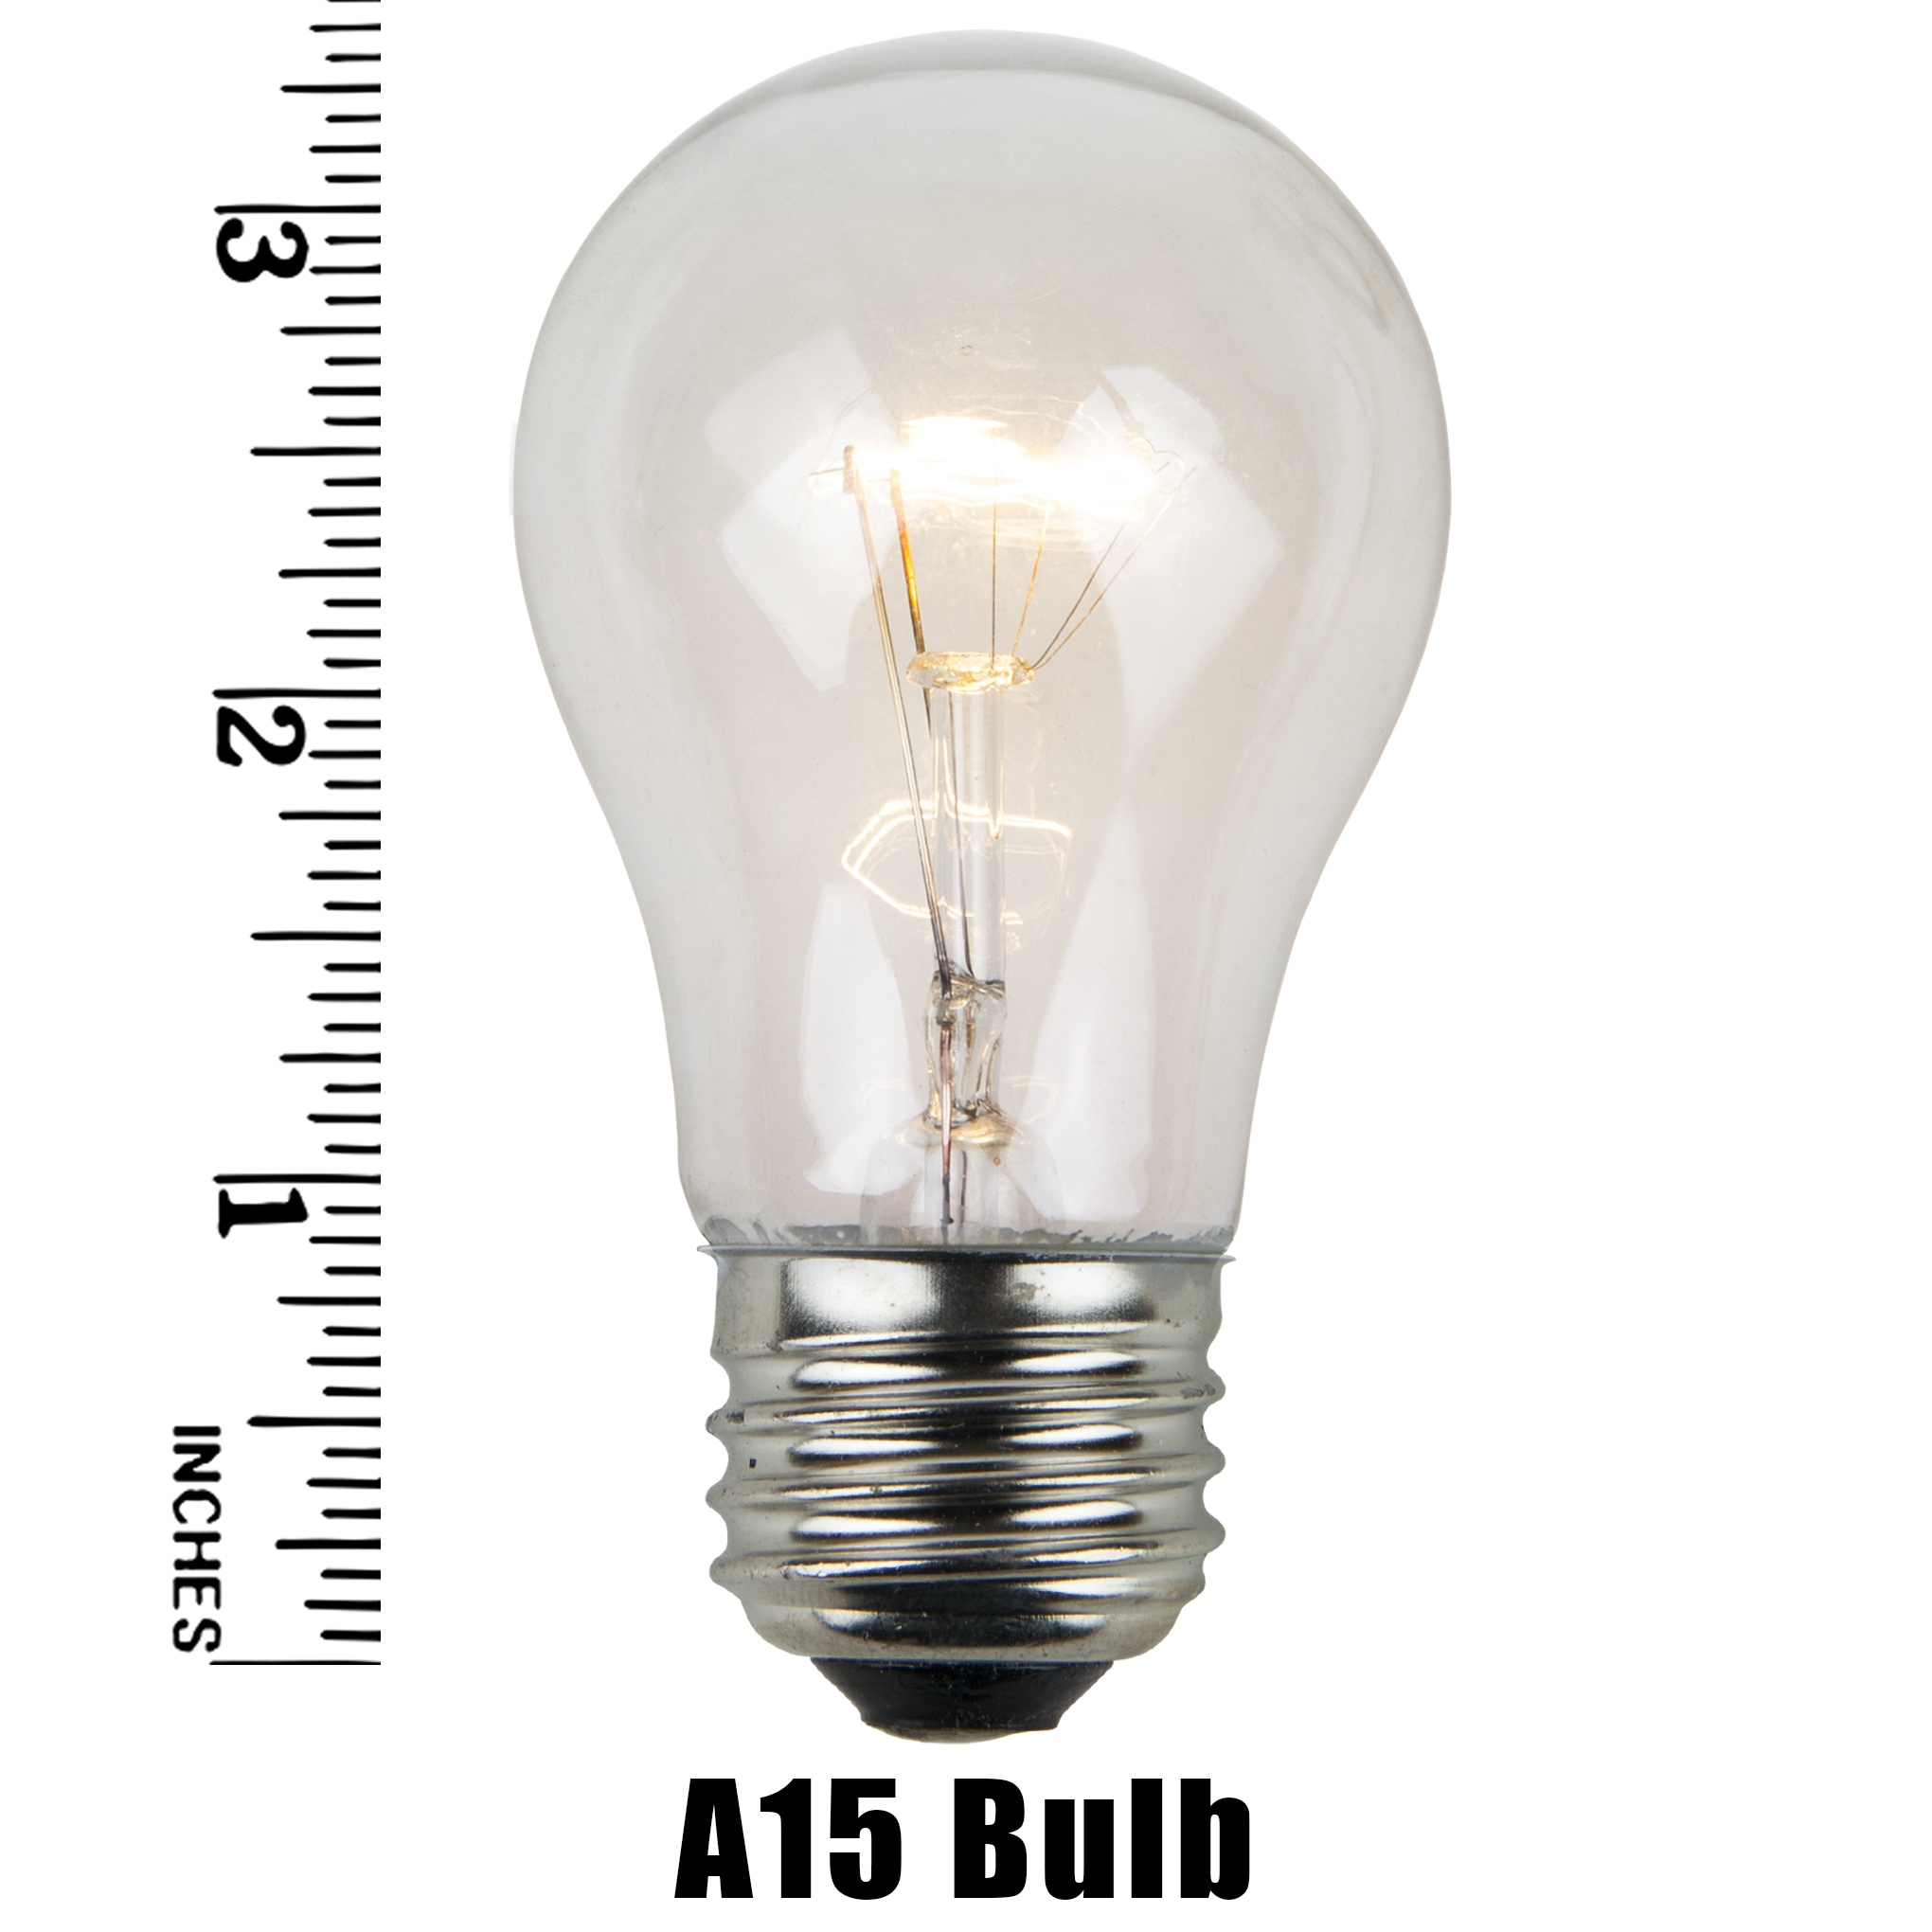 A15 Clear Transparent Incandescent Bulb Measurement